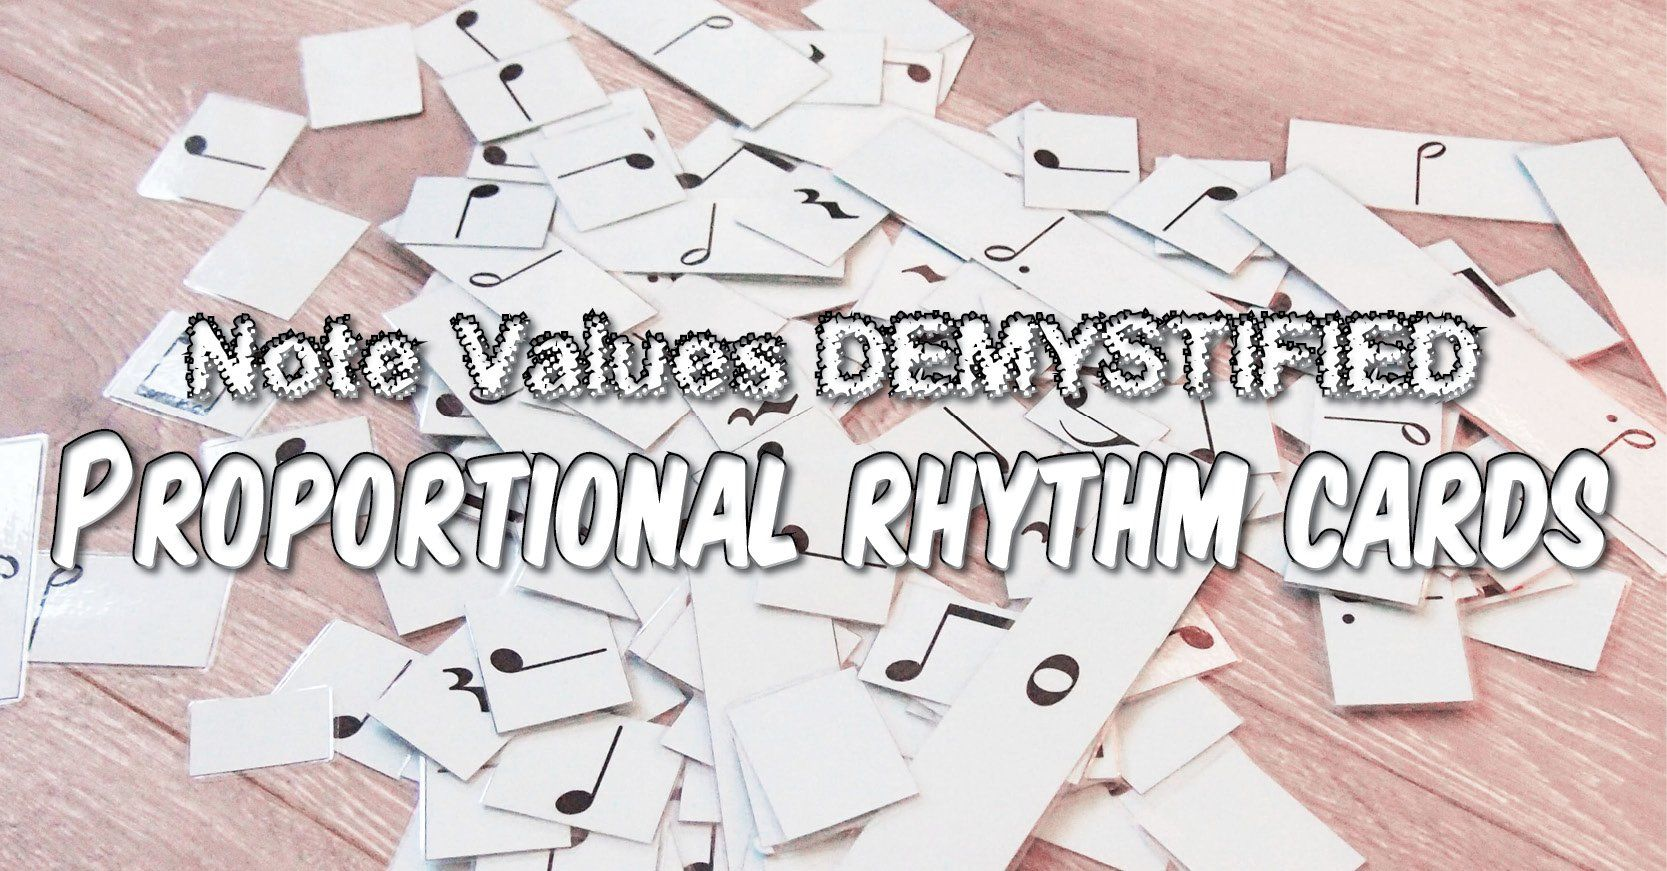 Note Values Demystified With Proportional Rhythm Cards